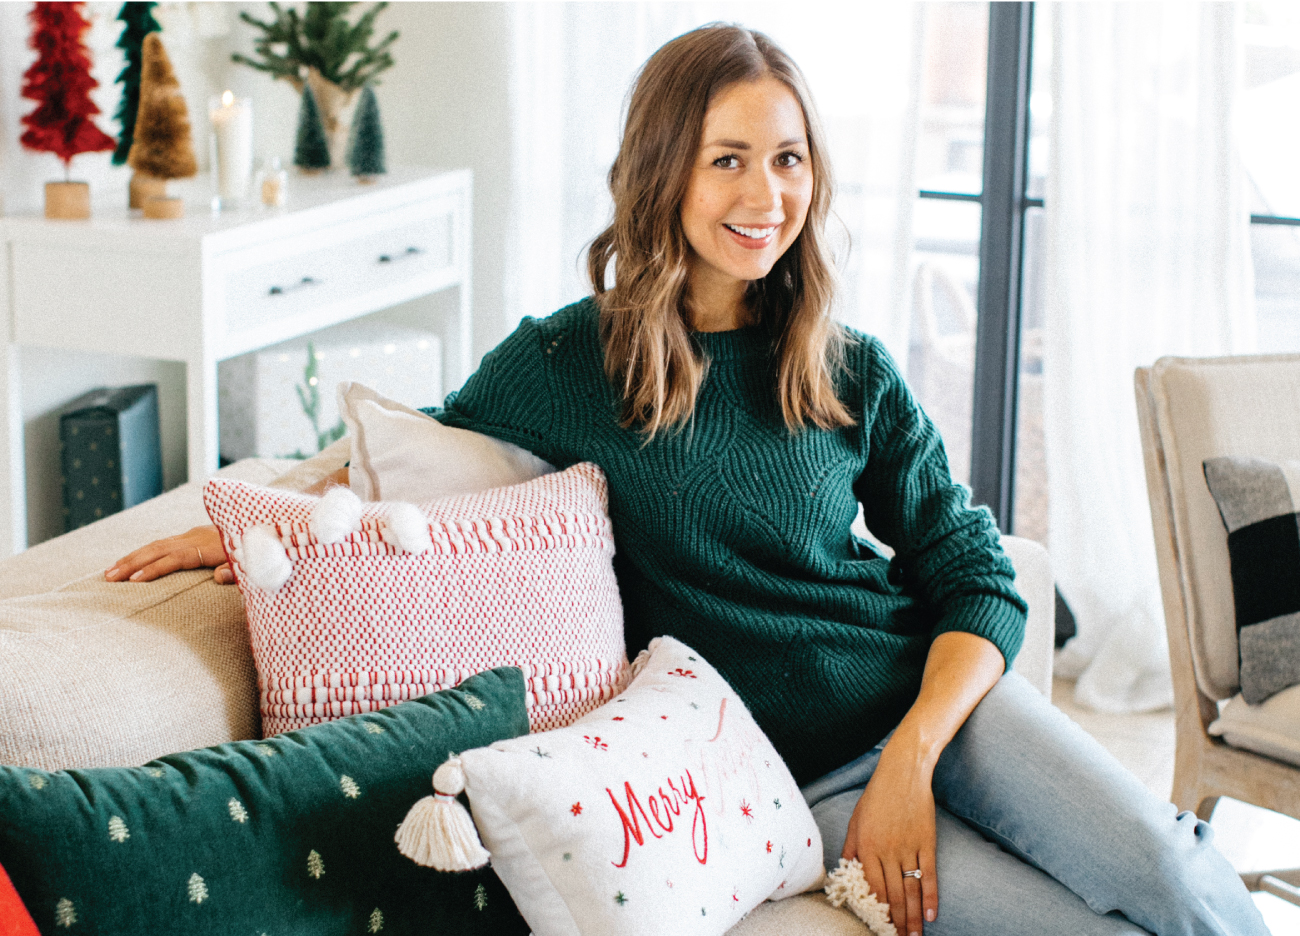 Camille Styles smiles while sitting in a festive living room setting